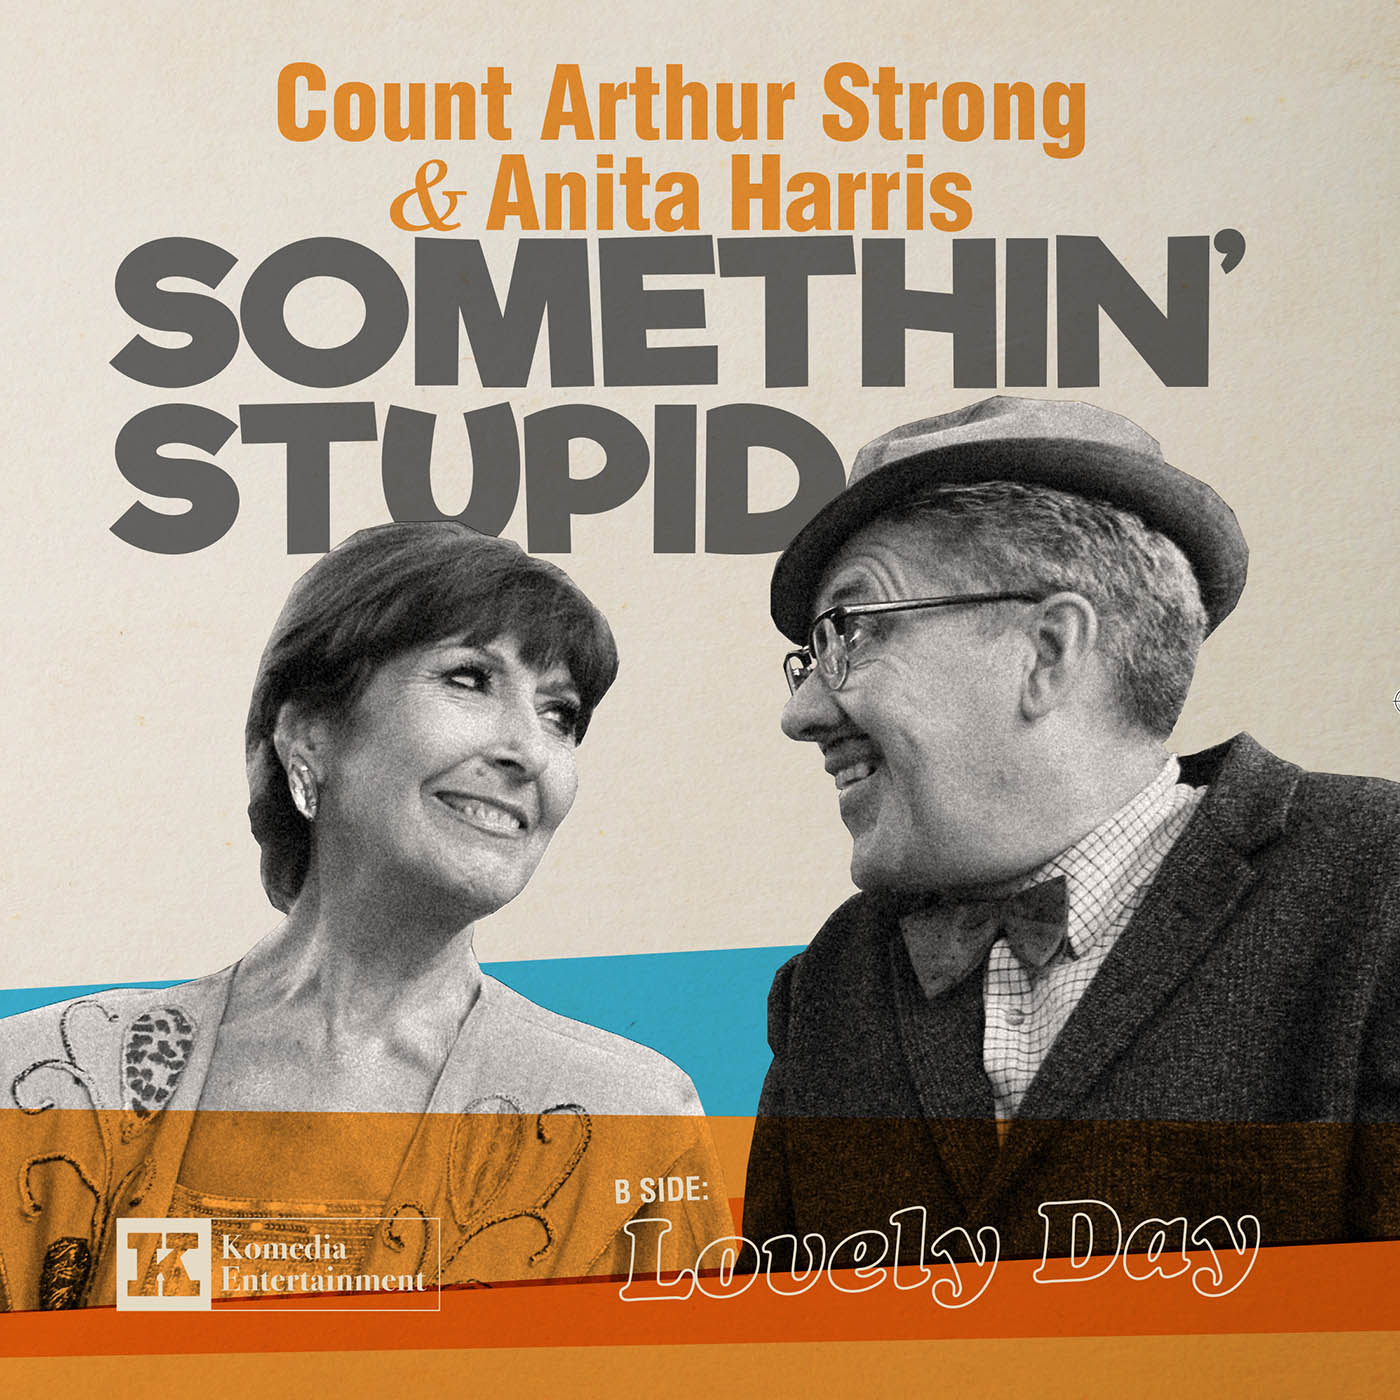 Somethin' stupid (satb) sheet music for french horn download free.